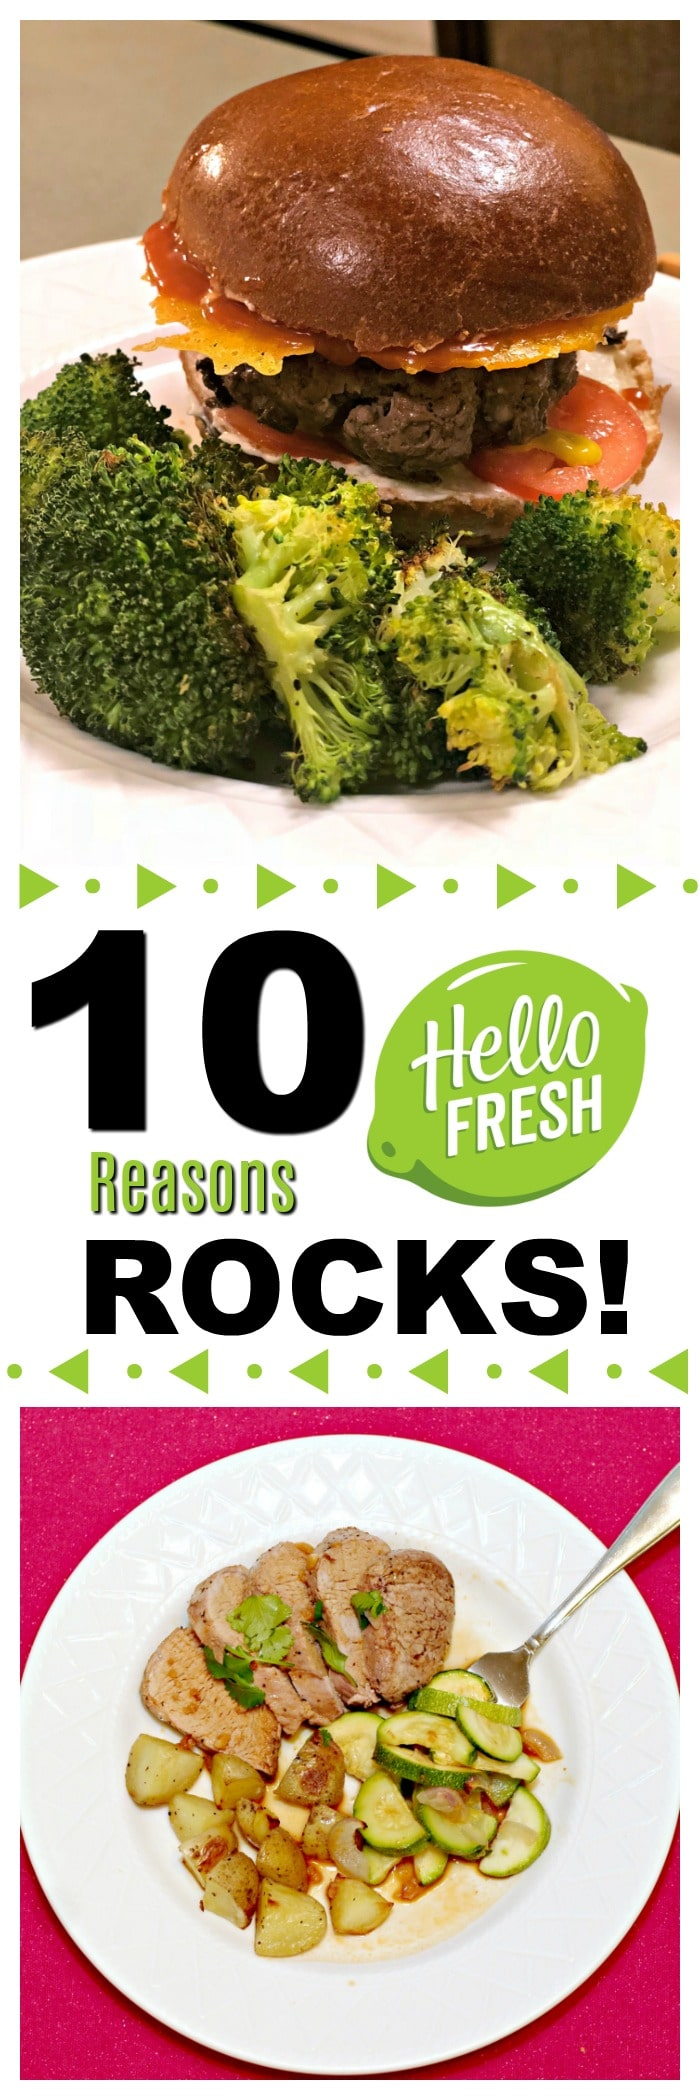 10 reasons hellofresh rocks, why should I try hellofresh, is hellofresh worth it